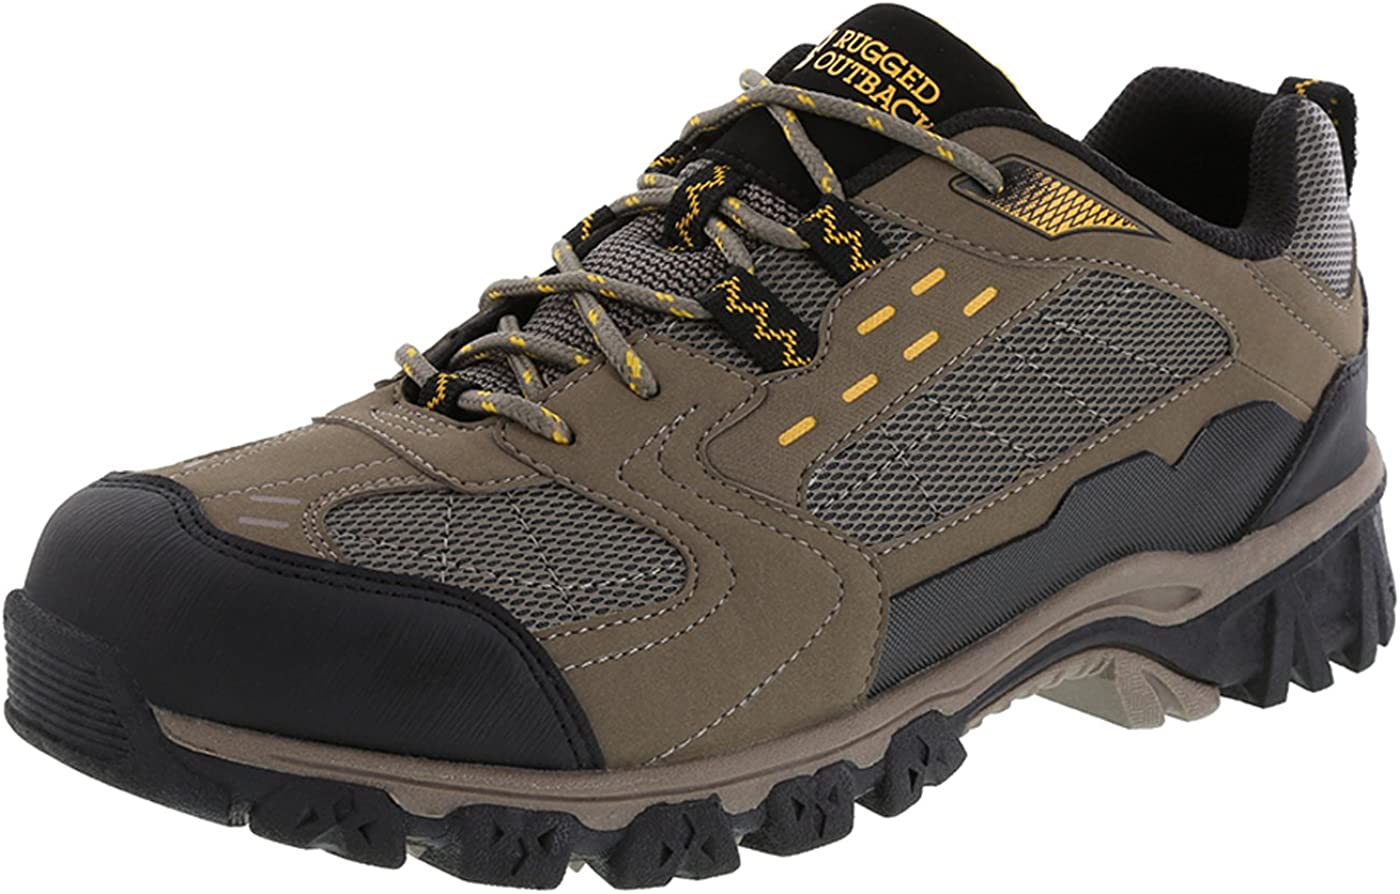 Rugged Outback Men's Dakota Hiker